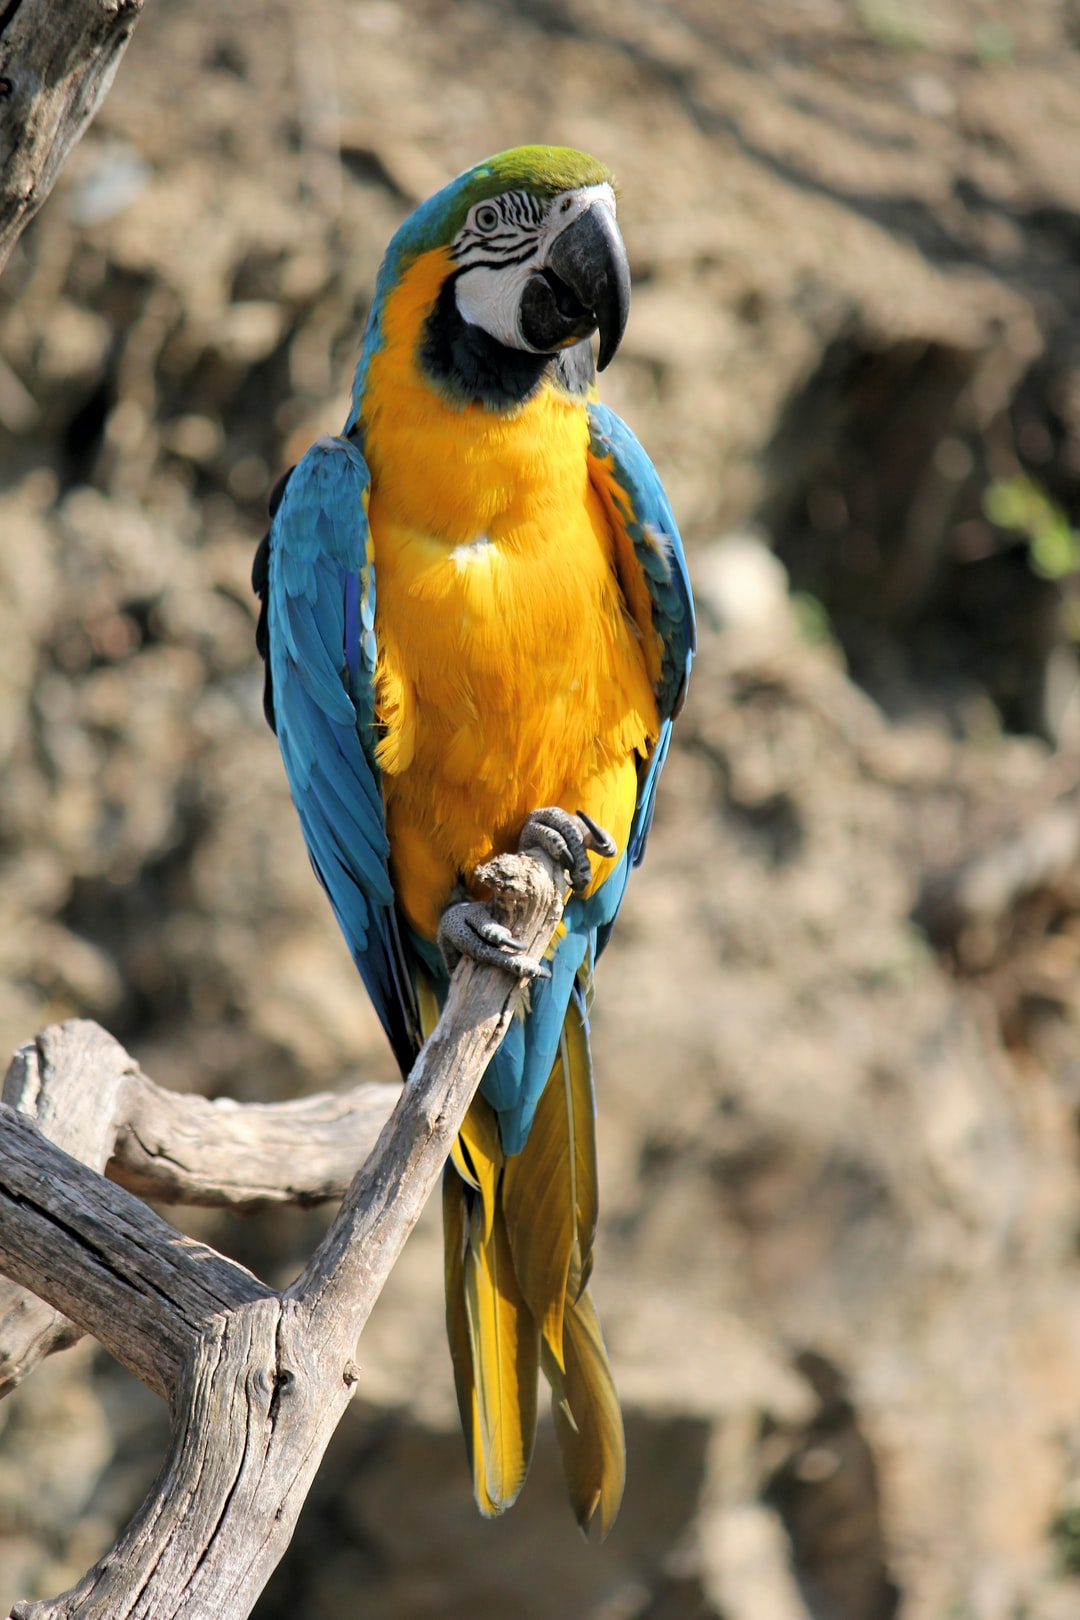 Parrot in blue and yellow